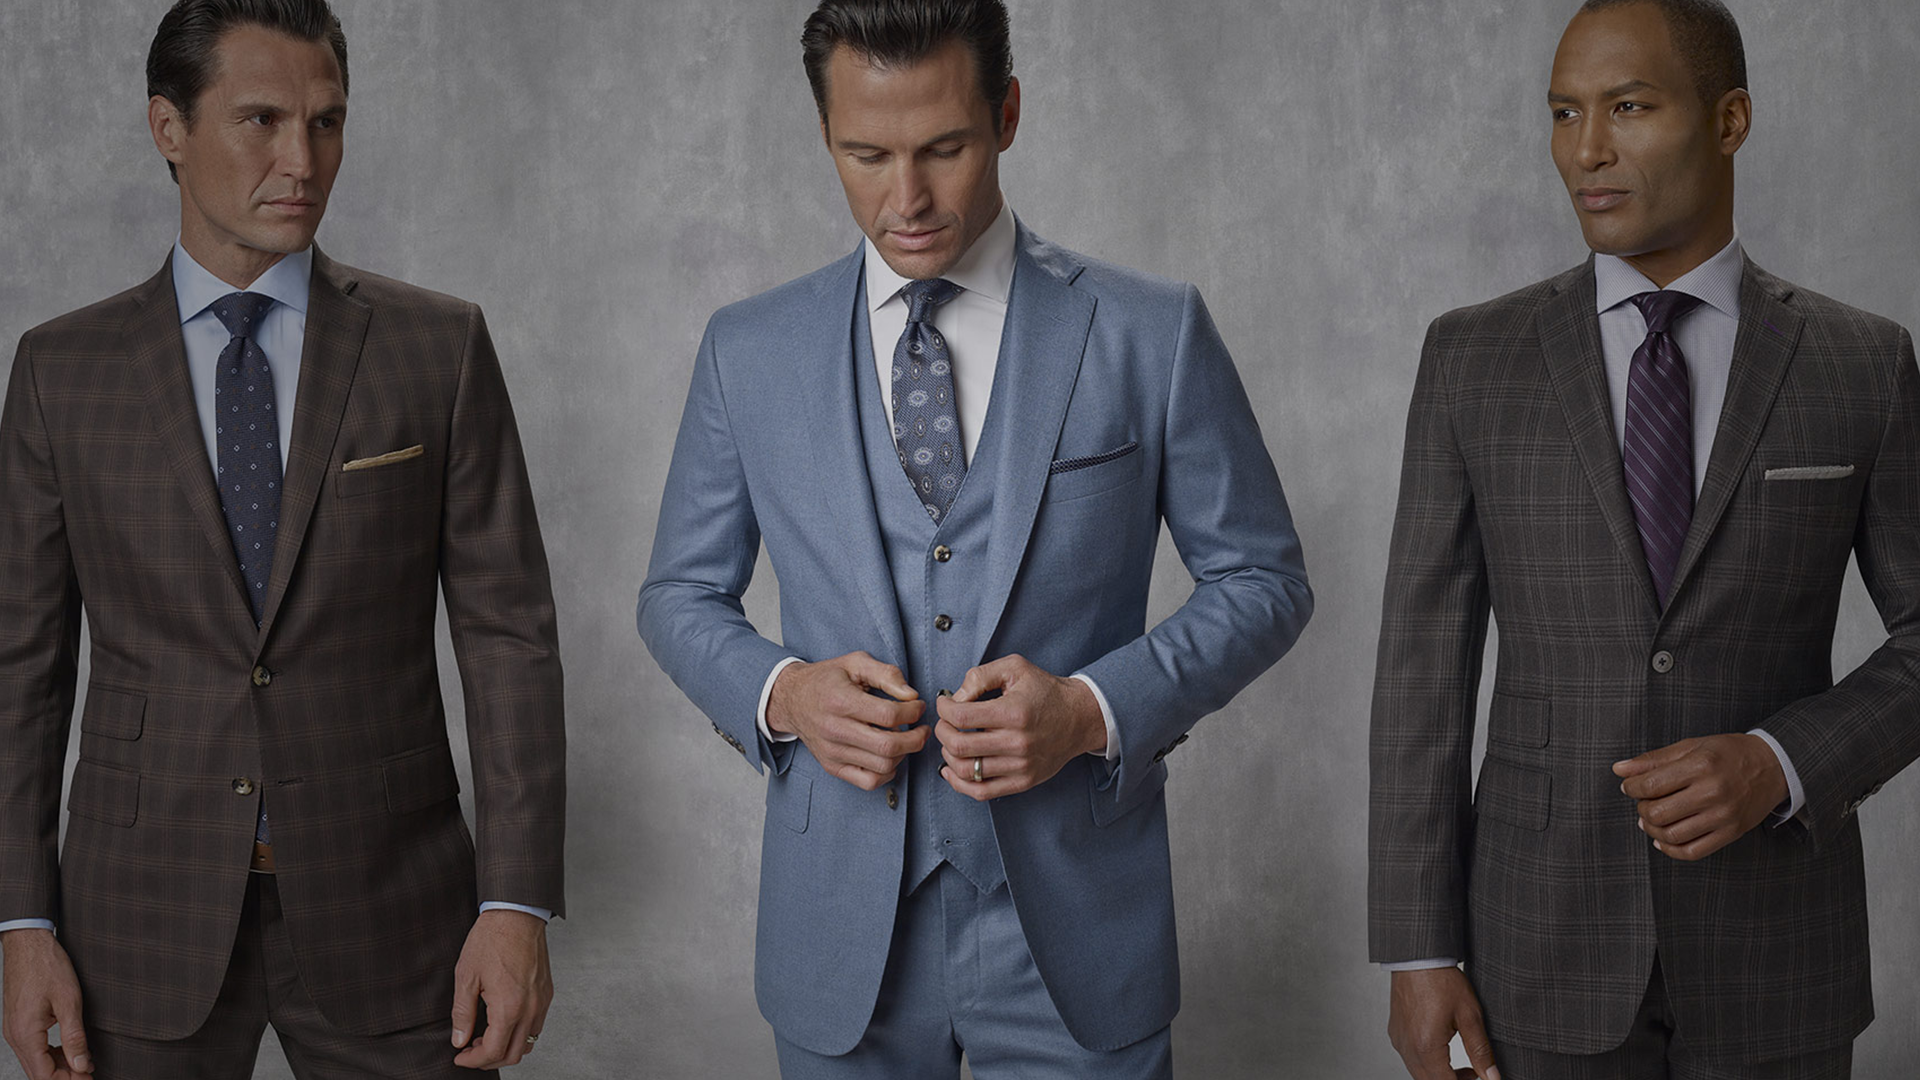 Tom James Company reviews   Formal Wear at 910 Main St - Boise ID